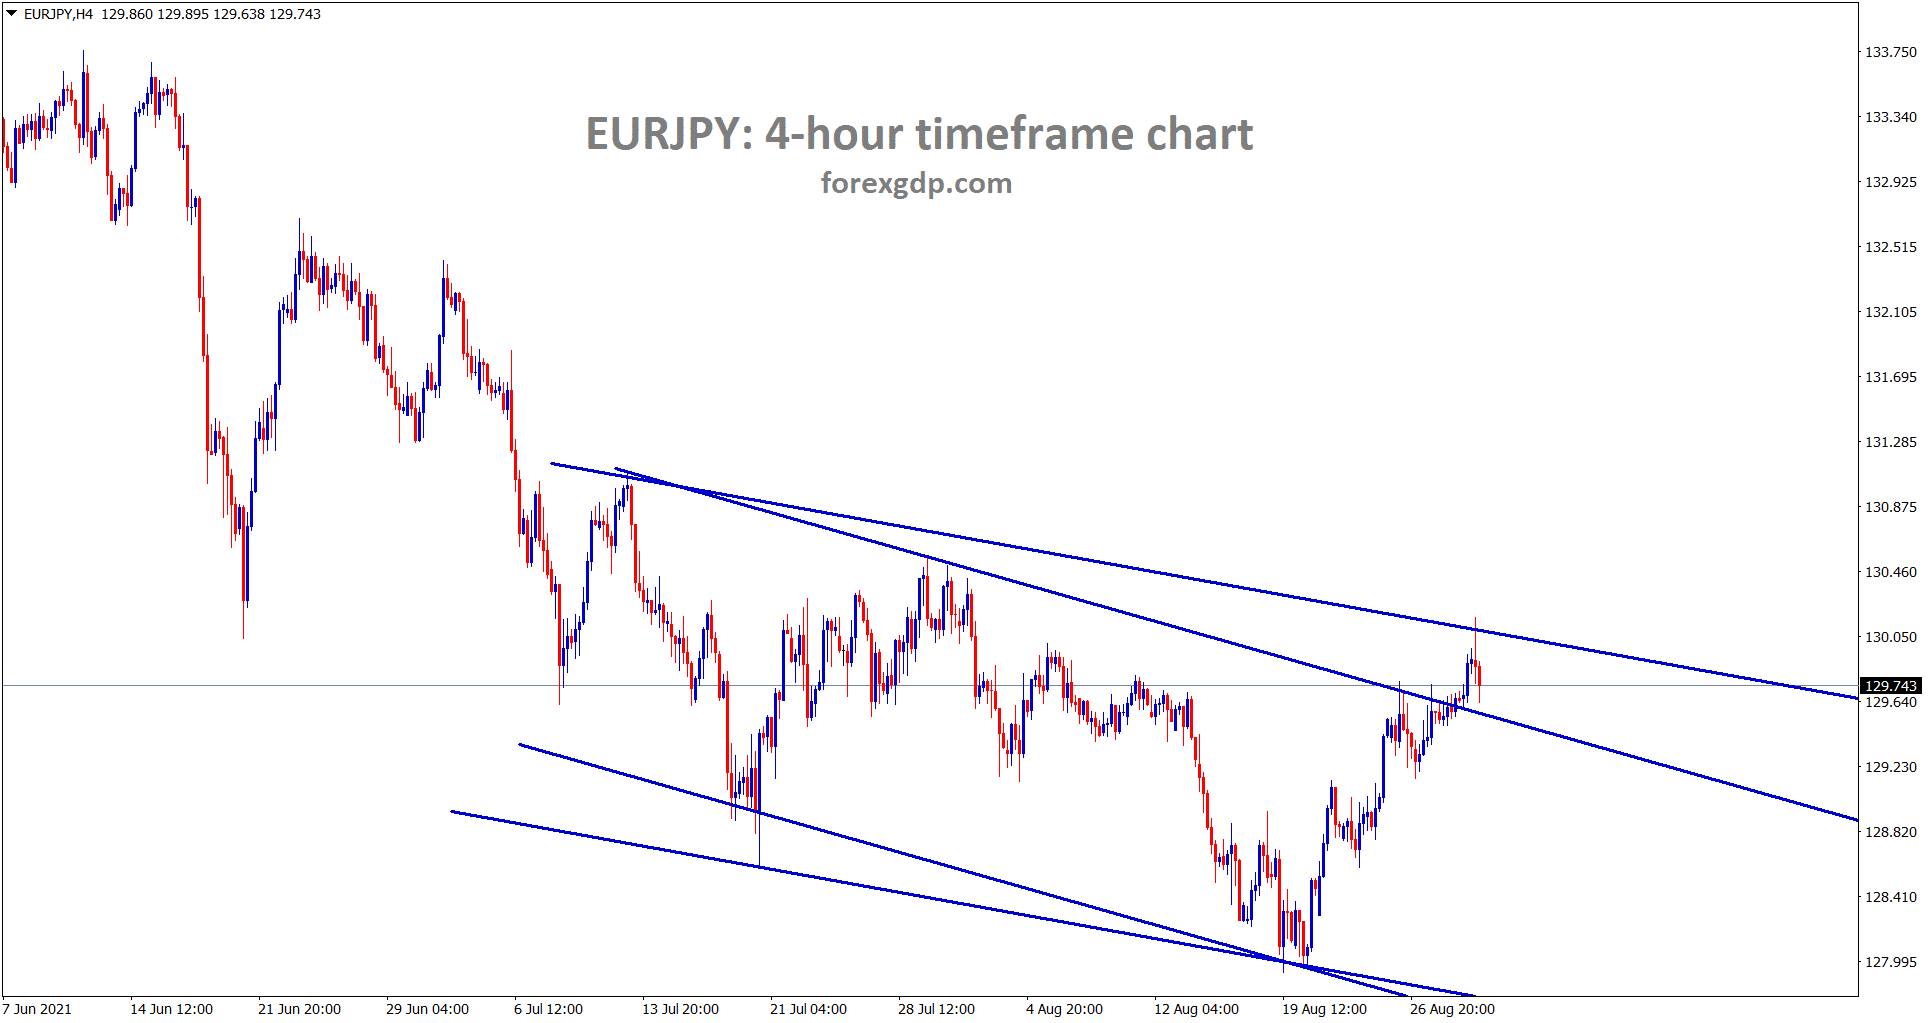 EURJPY is still at the lower high area of the descending channel wait for breakout or reversal